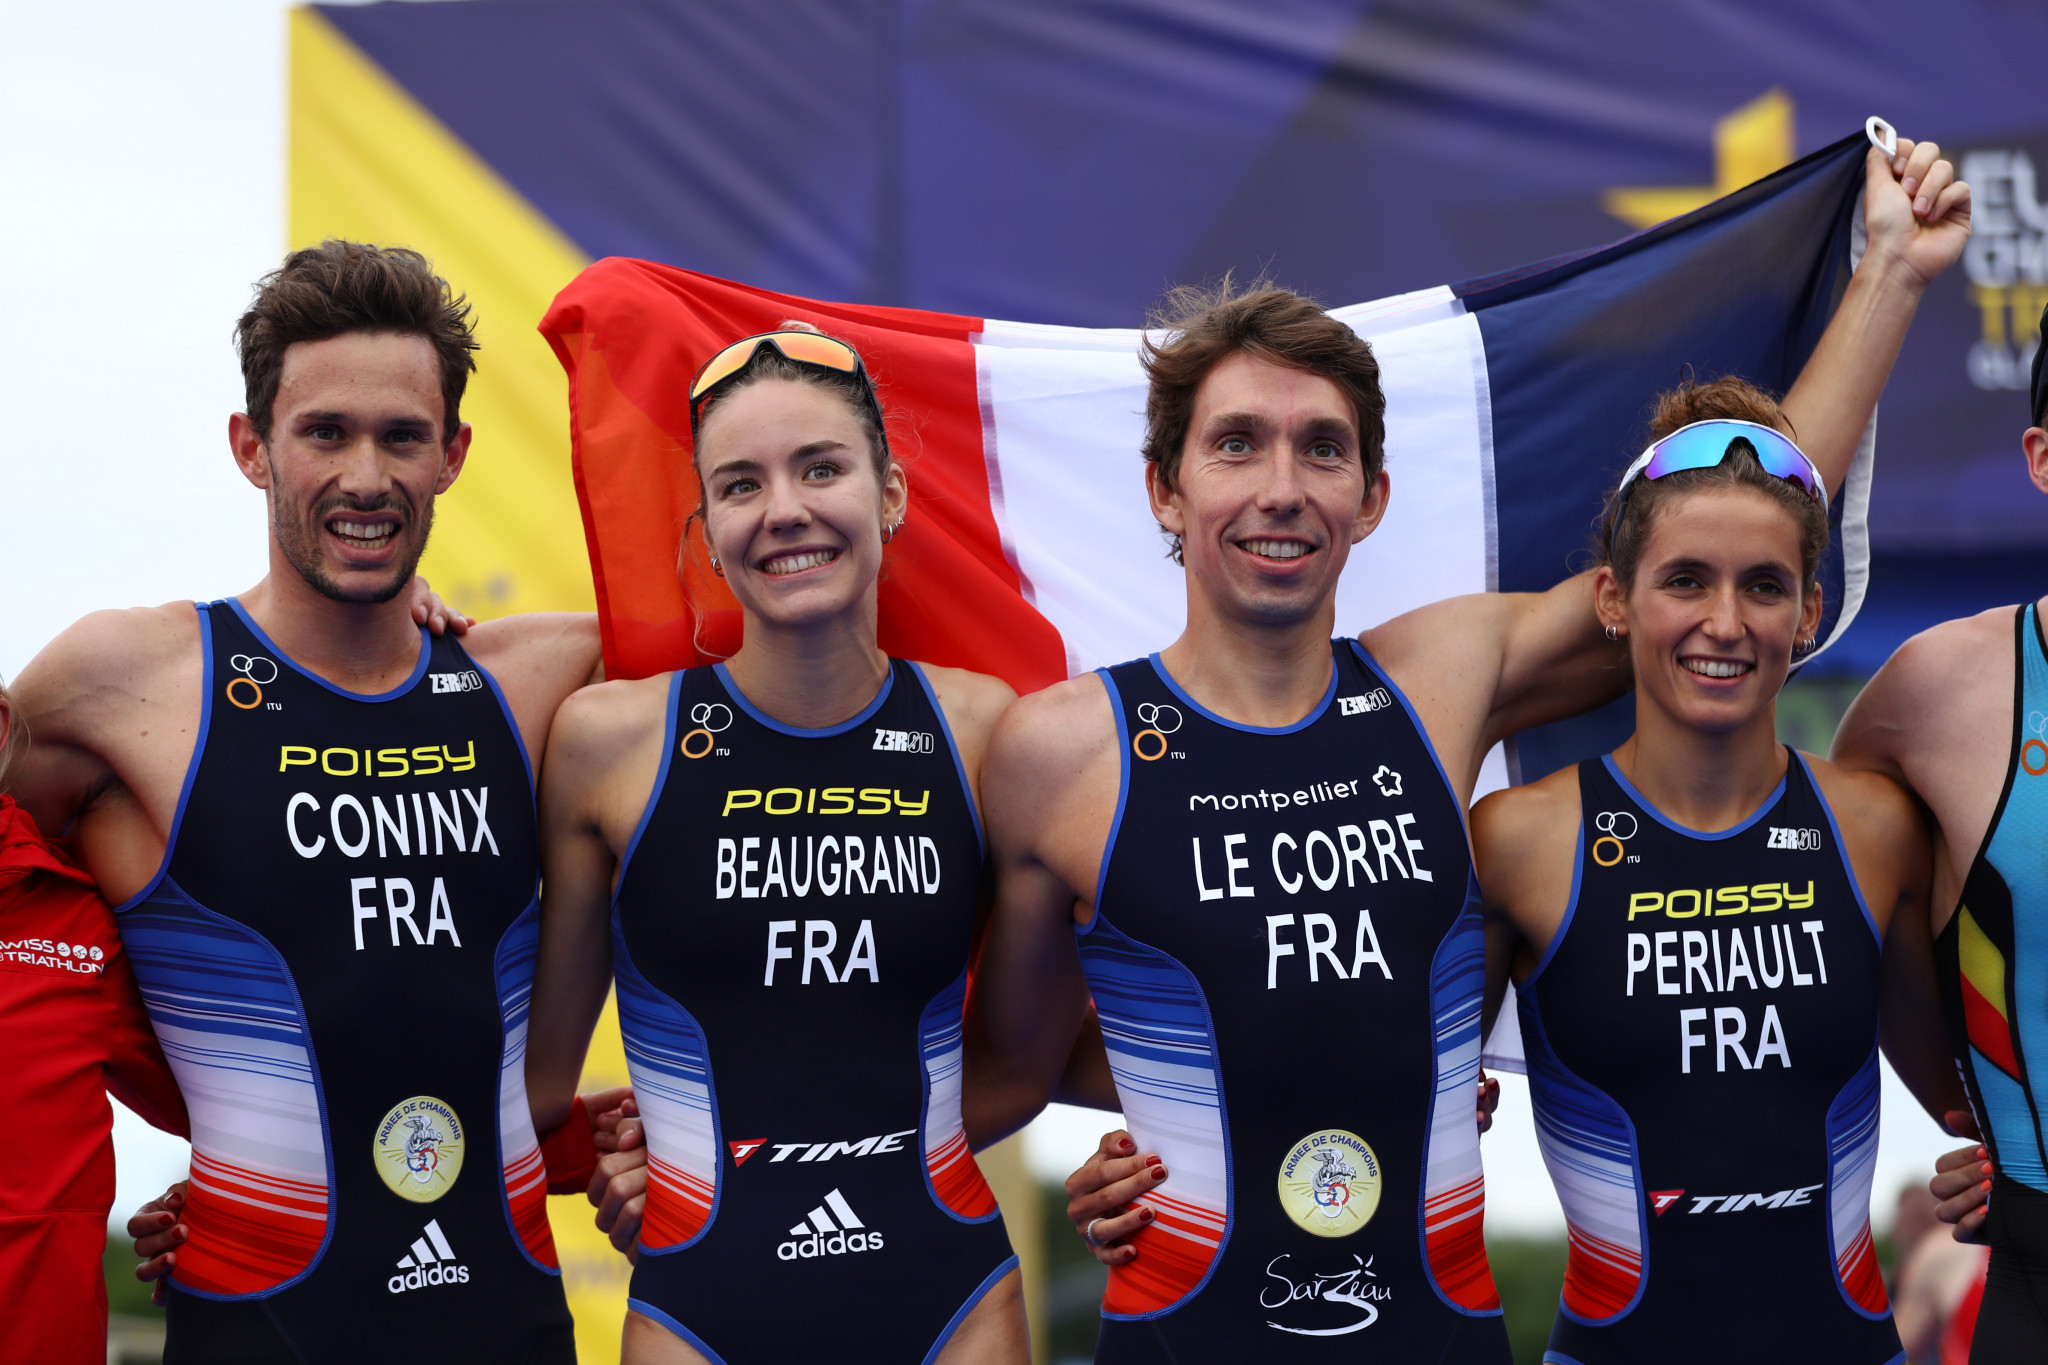 World champions France win mixed team relay triathlon event at Glasgow 2018 European Championships